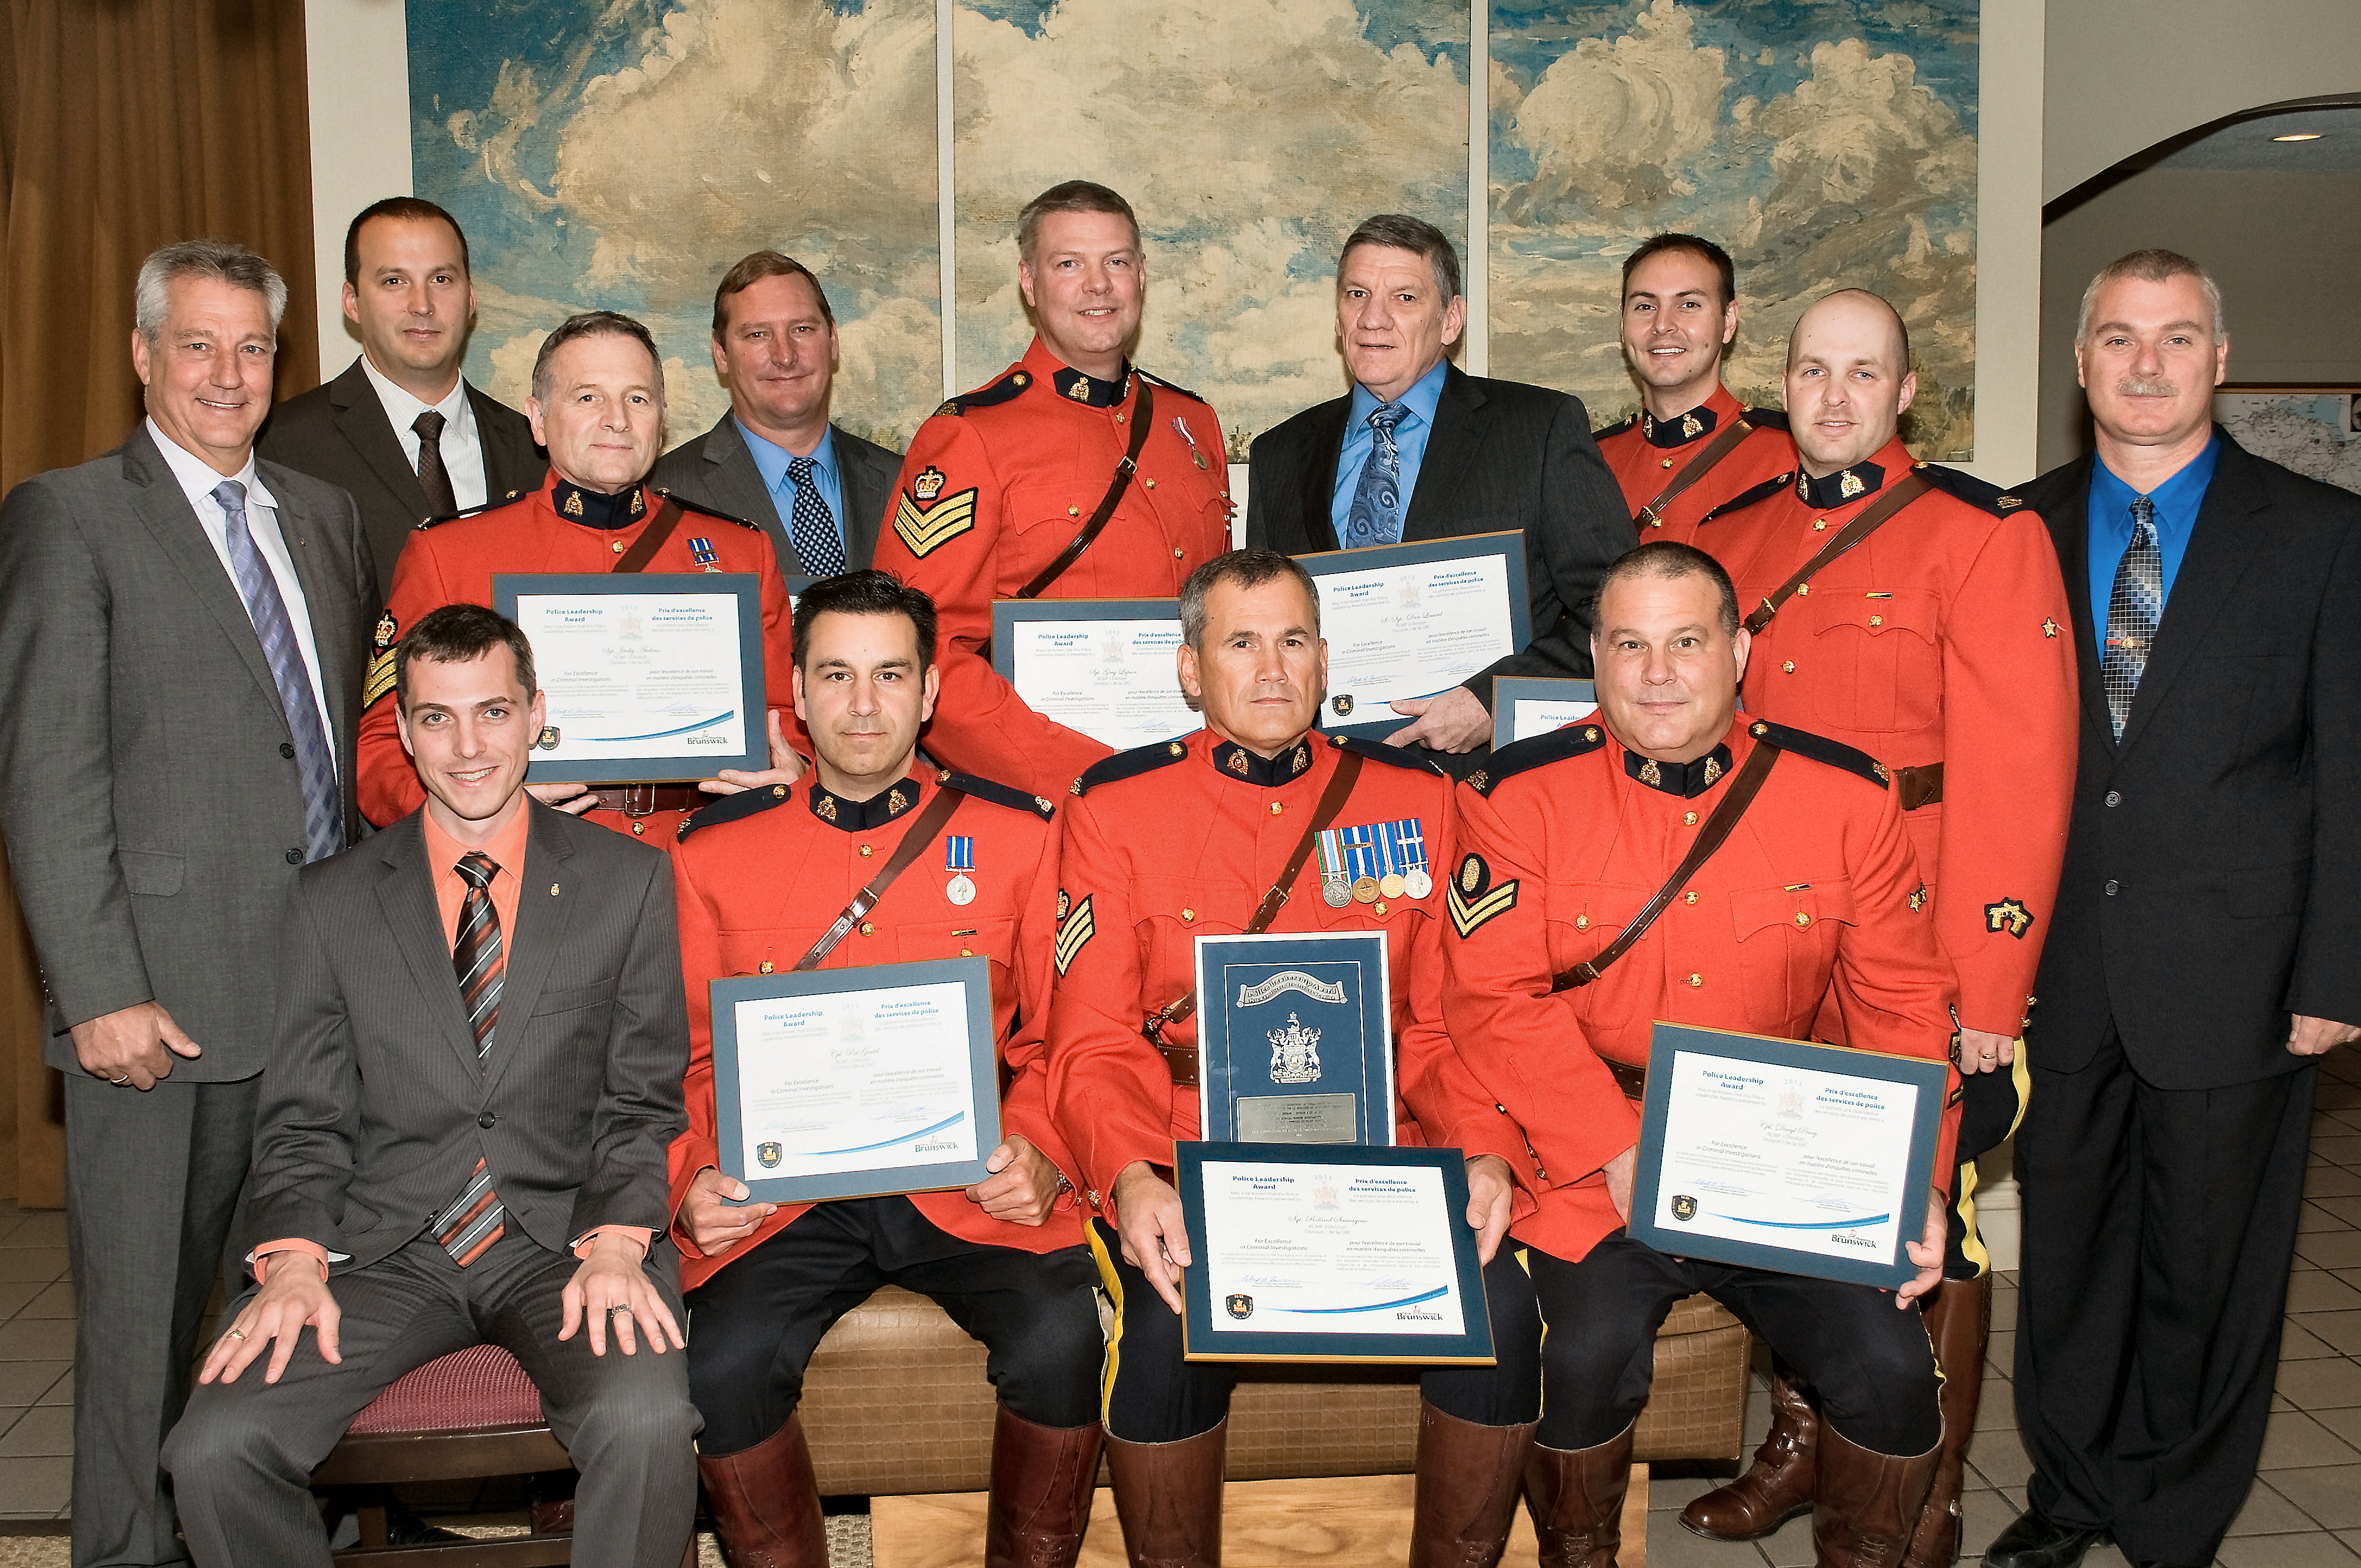 Police Leadership Awards Presented To Rcmp Officers And